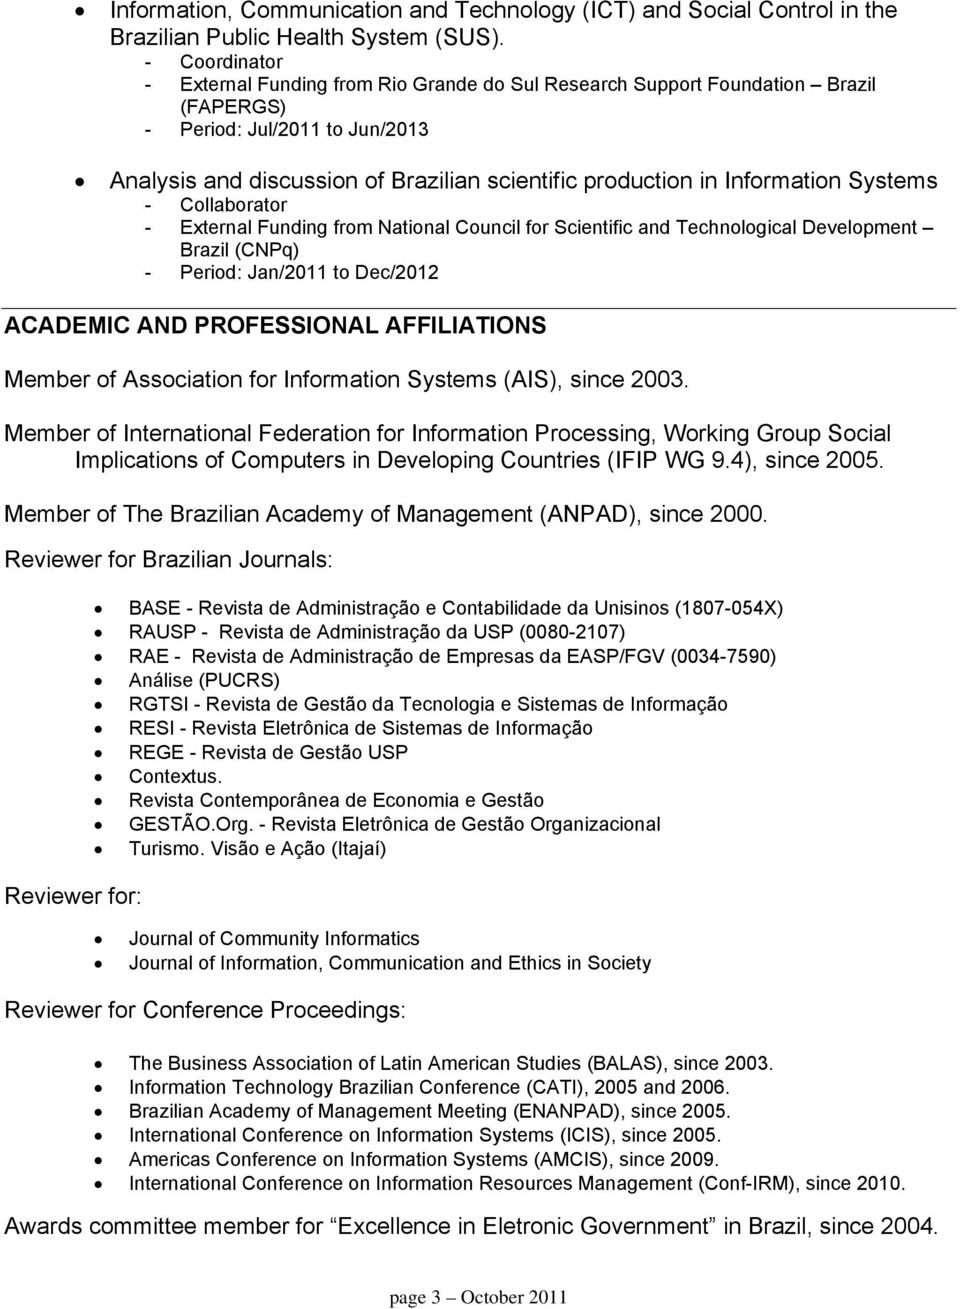 Information Systems - Collaborator - External Funding from National Council for Scientific and Technological Development Brazil (CNPq) - Period: Jan/2011 to Dec/2012 ACADEMIC AND PROFESSIONAL